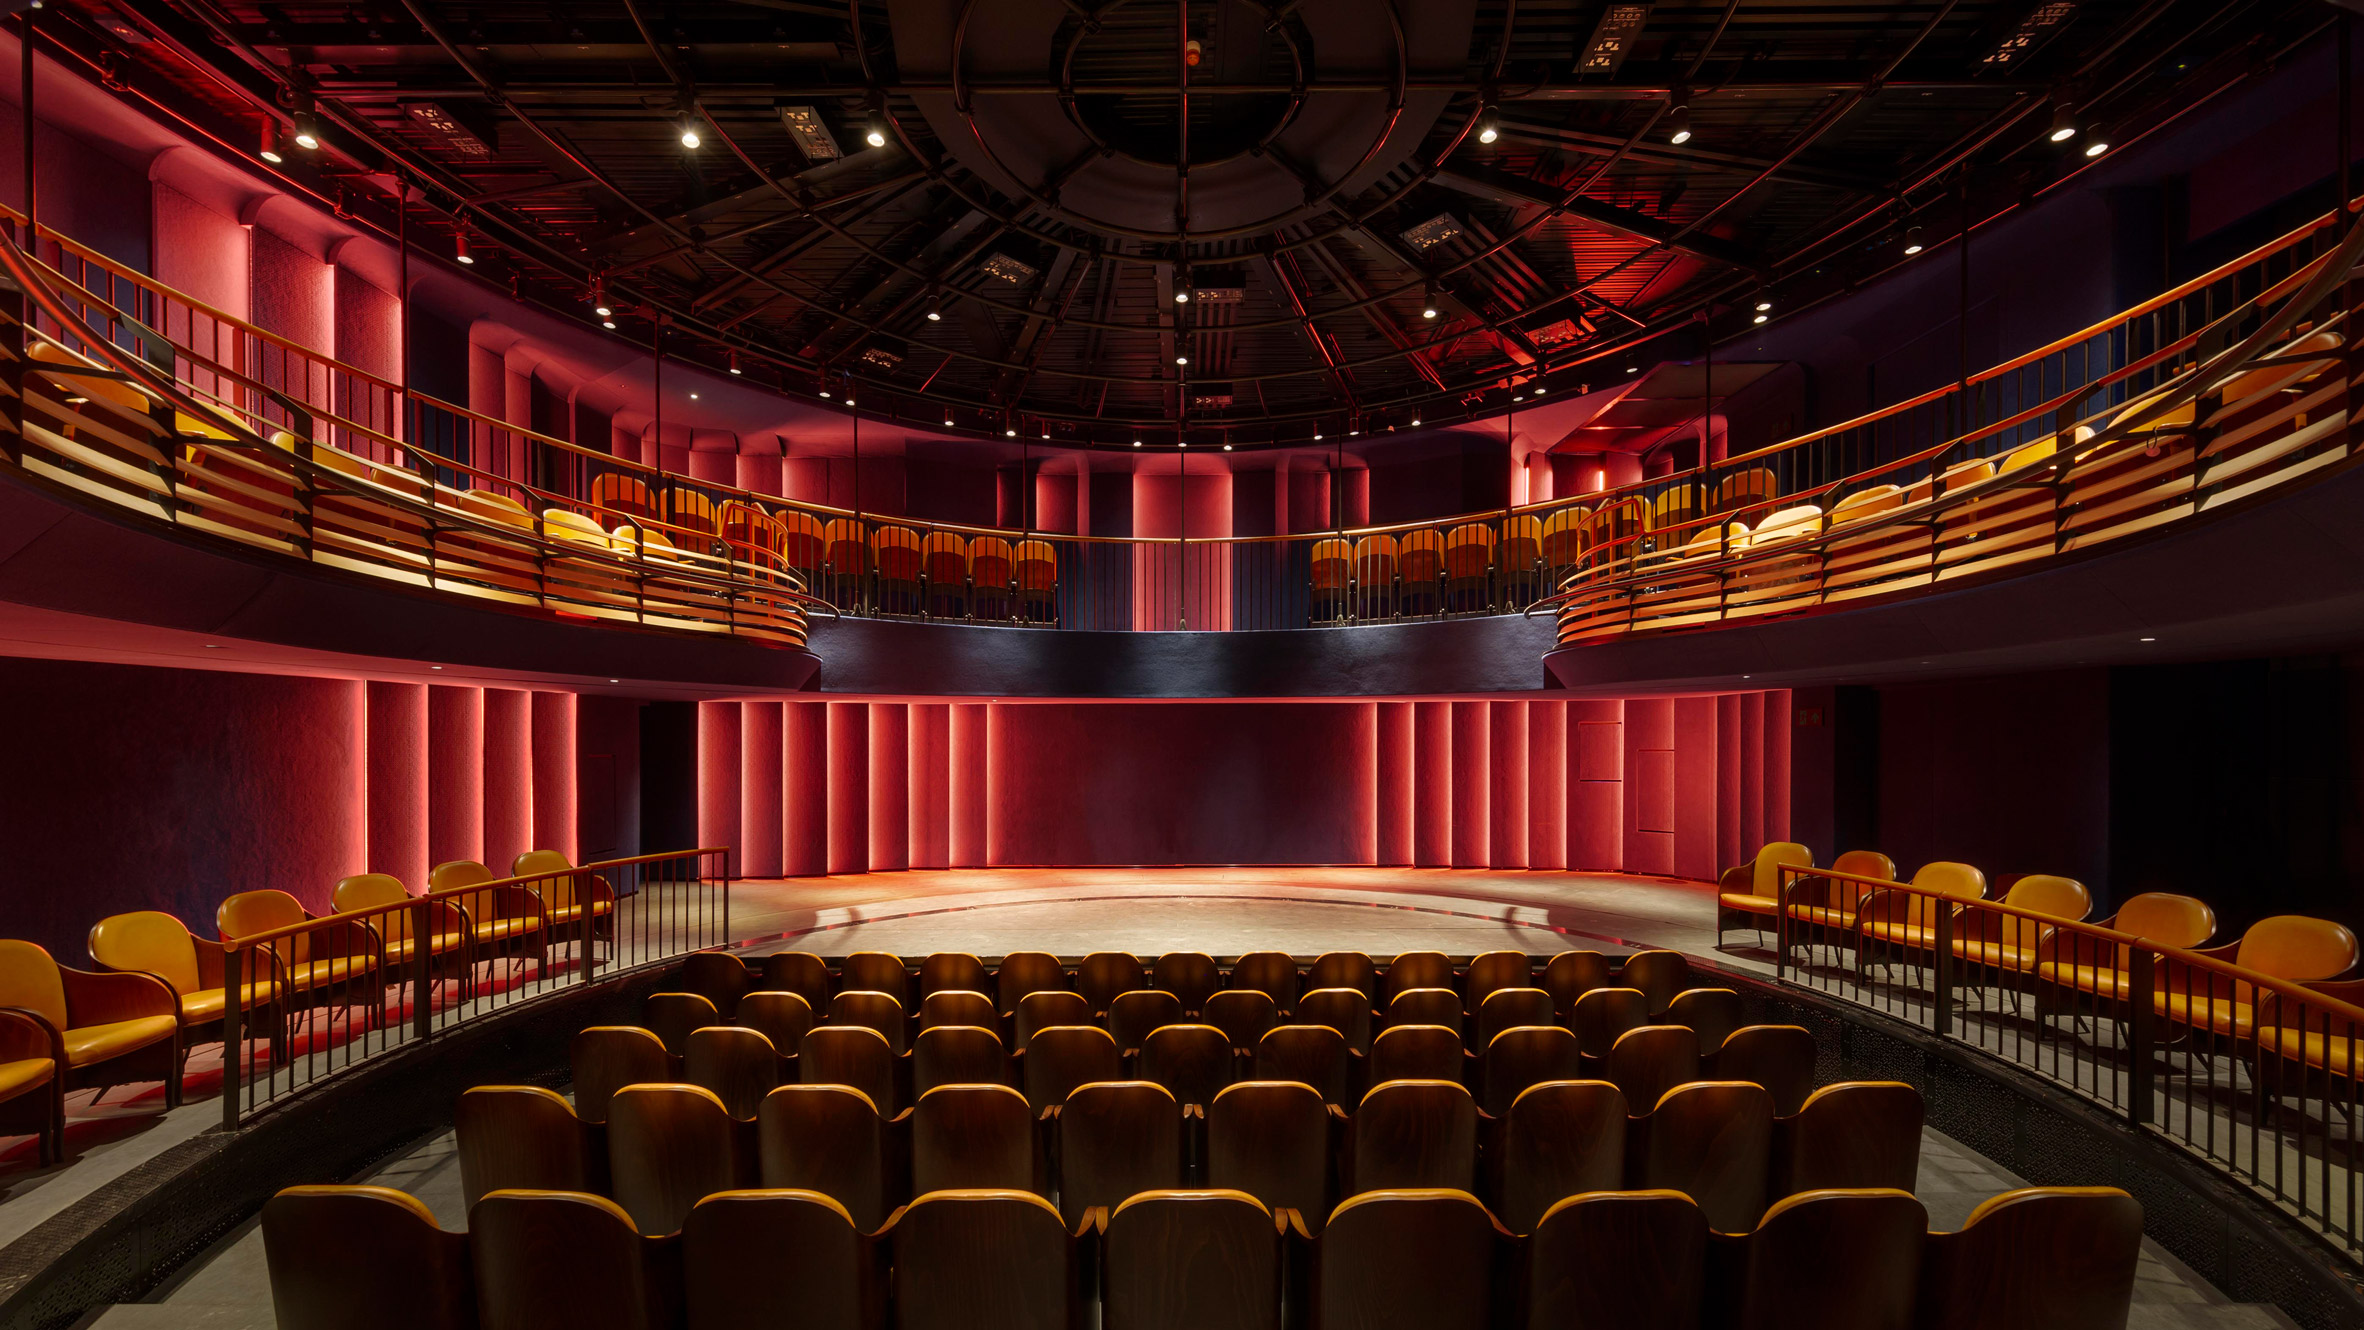 Boulevard Theatre In London By Soda Features A Revolving